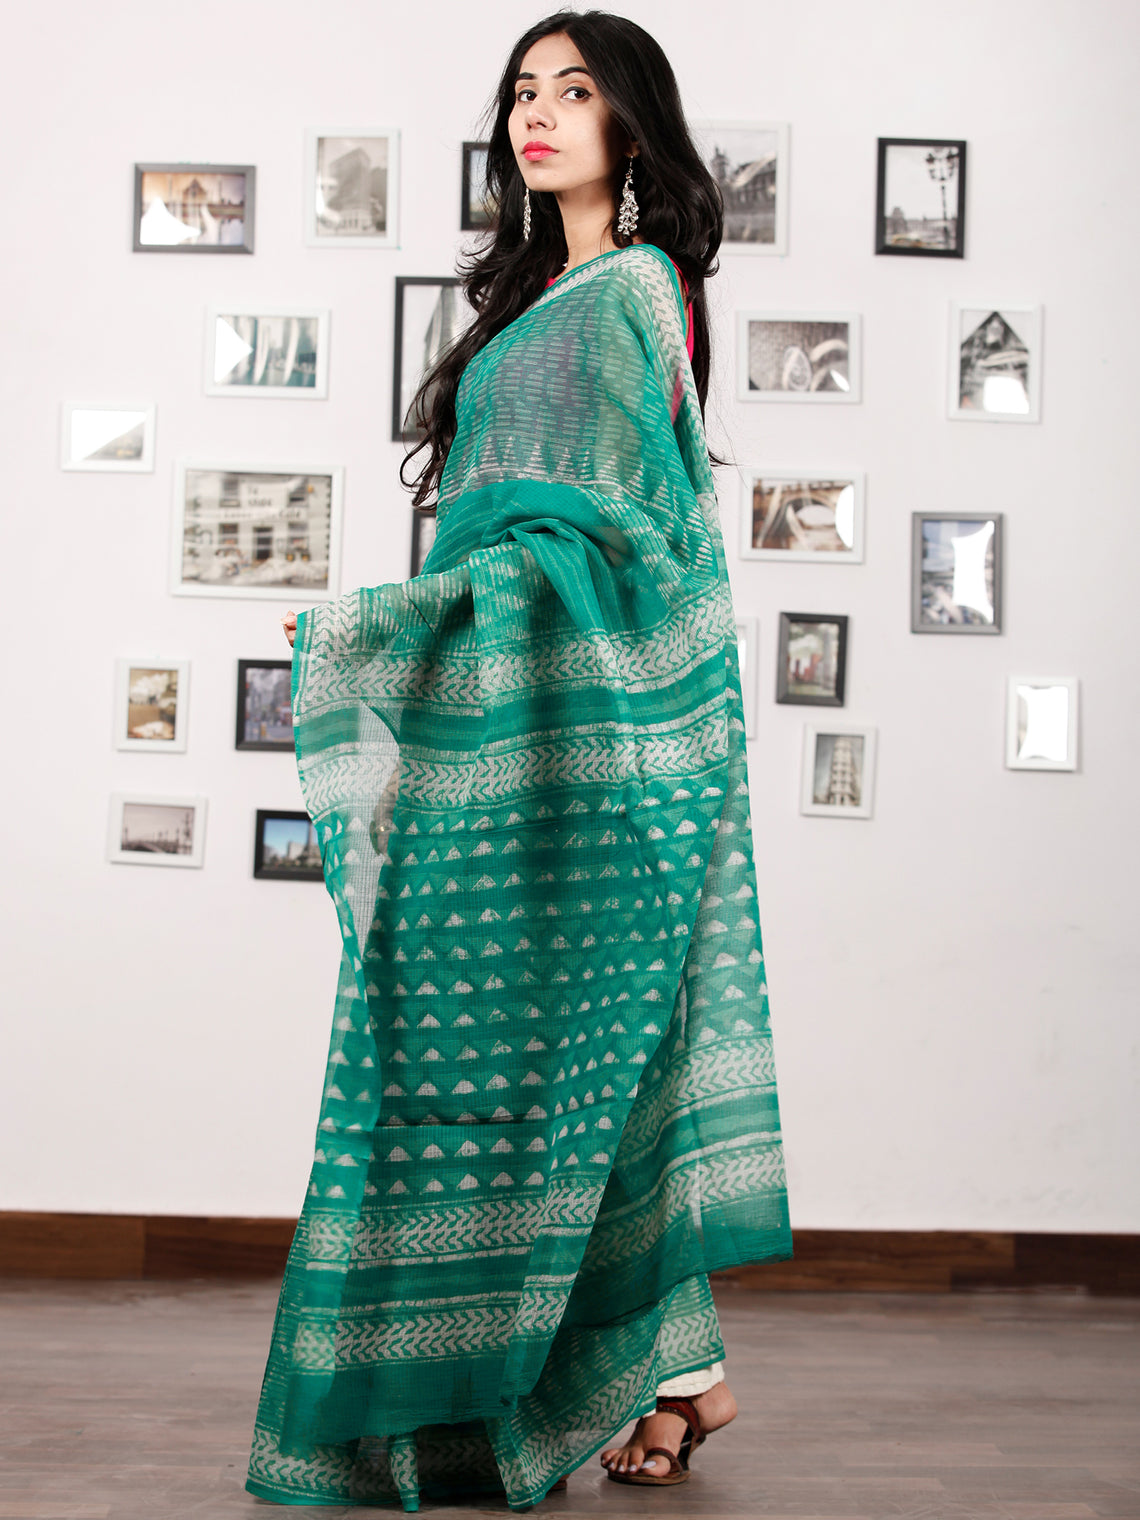 Green Ivory Hand Block Printed Kota Doria Saree in Natural Colors - S031702893